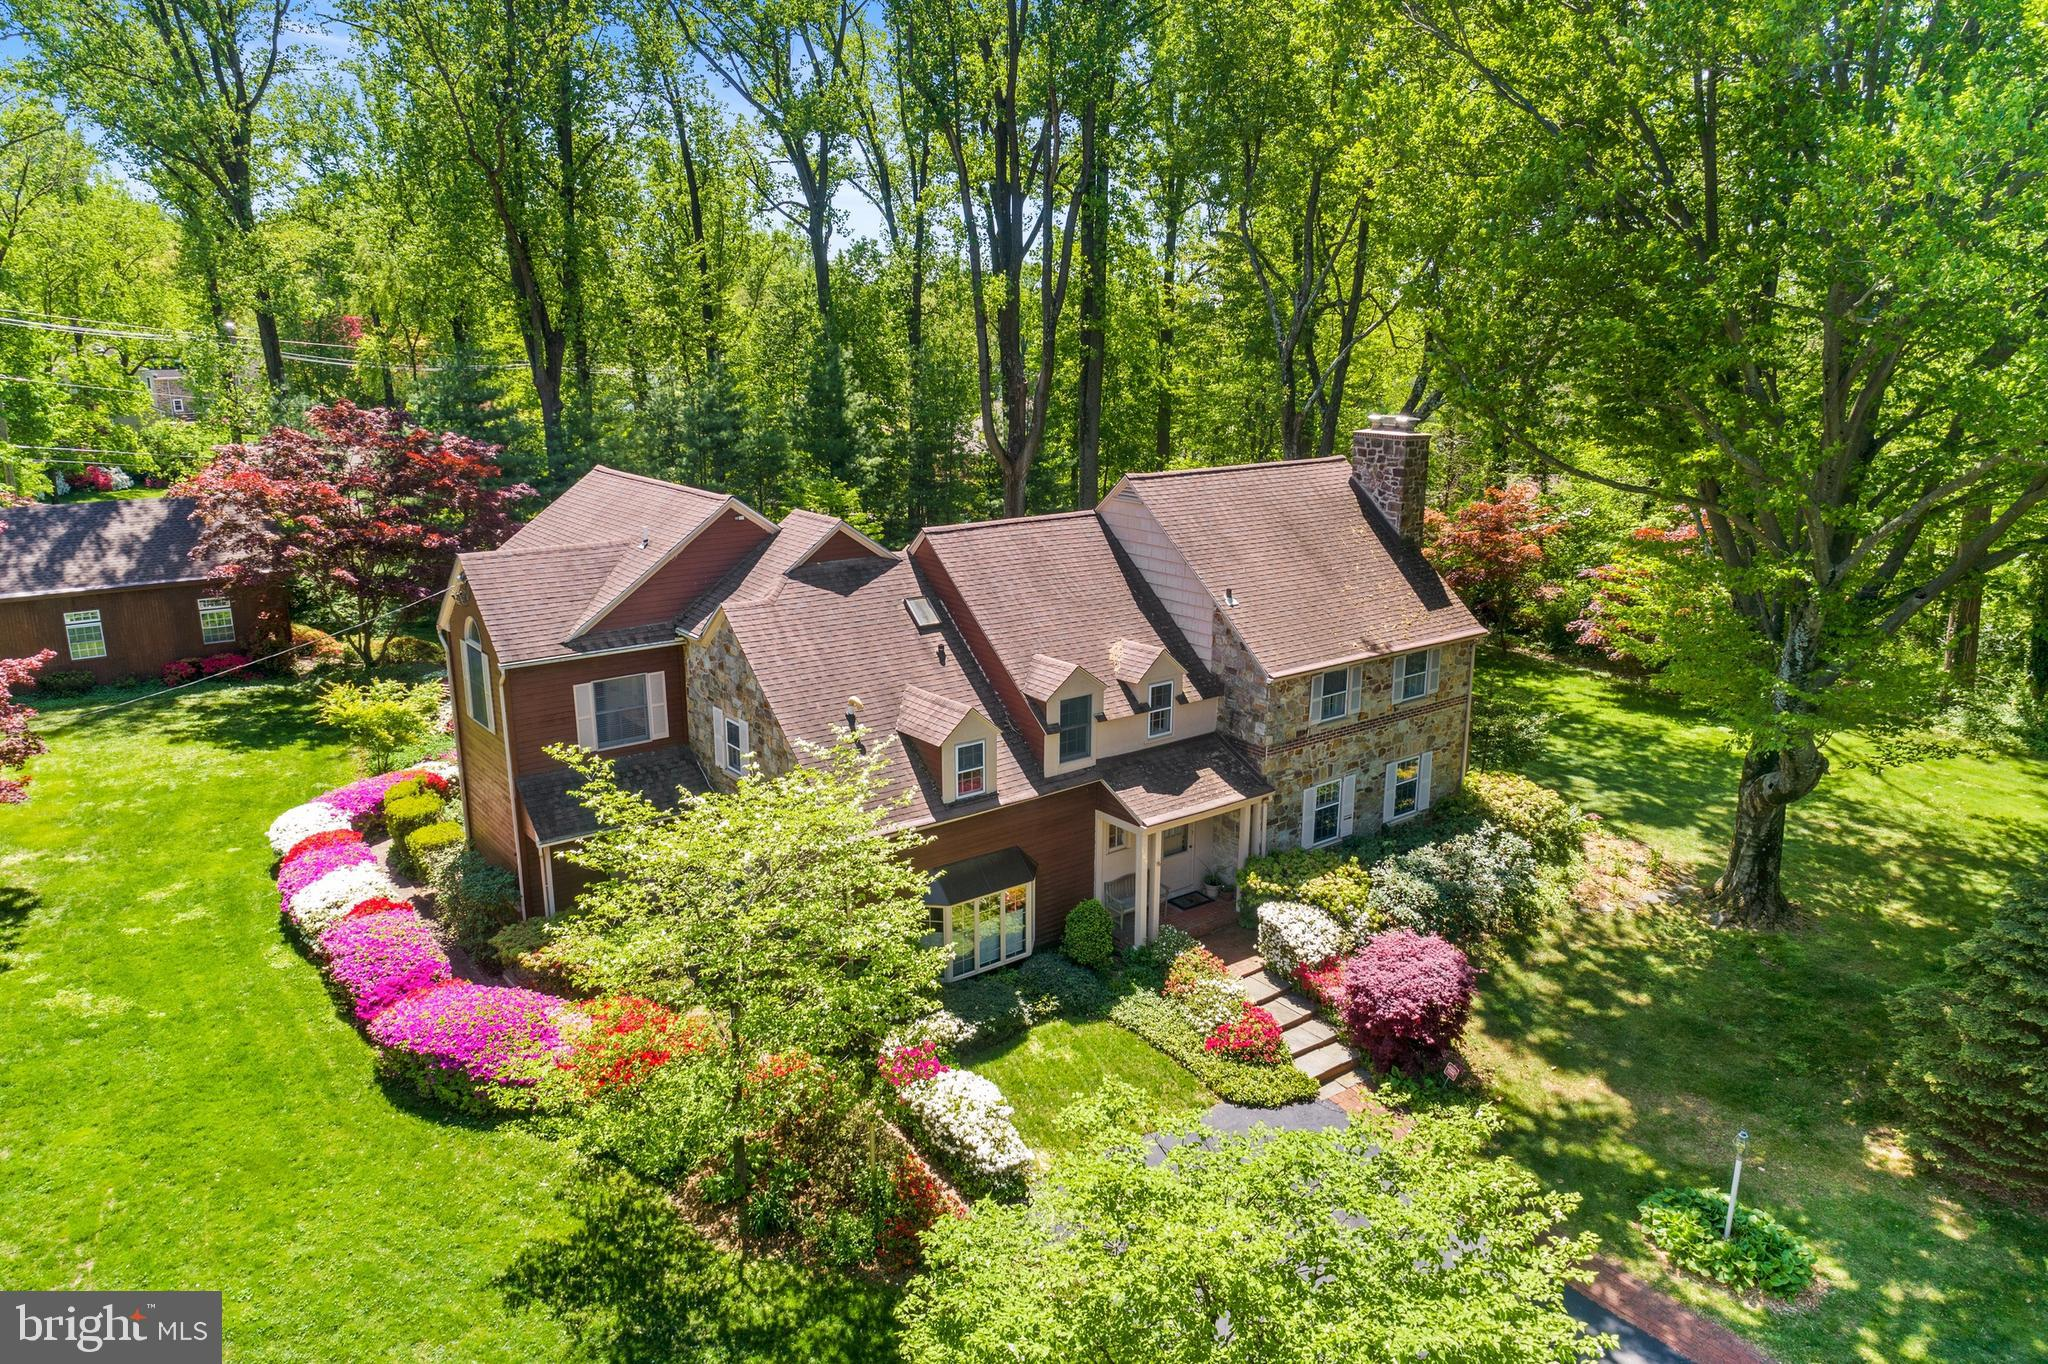 Wow! Wait until you see the beautiful, level yard at this new listing in Radnor Township! This gracious 4-5 BD, 3/2 BA stone colonial has great curb appeal and has been expanded with a 2-story addition, including a huge Master BD suite and a 1st floor Family Room. The floor plan offers circular flow throughout the 1st floor, from the Entrance Hall to the formal Living Room, to the Dining Room, Kitchen, and 2 Family Rooms. Flexible floor plan offers multiple areas for casual everyday living and gracious formal entertaining. The cozy step-down Family Room offers ample space for relaxing and watching TV. Sunlight streams through large windows in a Family Room addition, currently used as a Breakfast Room and Office.  Walls of windows also brighten the tiled, heated Sunroom, which overlooks the large side yard and opens to the Dining and Living rooms. The Kitchen features loads of counter space and a commercial-style gas range. Closets, 2 Powder Rooms and a Mudroom complete the main floor. Upstairs, soaring vaulted ceilings highlight the huge Master Bedroom, which also has a walk-in closet and a large Master BA with shower and separate tub. Bedroom 2, which was the original Master BD, has 2 closets and an en suite 2nd full BA. Bedrooms 3 and 4 share the 3rd Full Hall BA. The upstairs Office has a closet and accesses the convenient upstairs Laundry Room. This room could also be used as a 5th BD (Laundry was originally a BA.) The finished lower level Recreation Room has a fireplace plus multiple closets and several unfinished storage rooms add more storage space. The detached, oversized 2-car Garage has an additional extra storage bay for sports and yard equipment. A large upstairs loft over the garage offers great storage and potential for additional finished space or a private office or exercise area. Enjoy relaxing on the expansive rear deck and unwinding after exercise or a long day at work in the jetted hot tub. The sweeping grassy lawn offers great space for outdoor recreation, gardening, sports or even a pool. Flowering shrubs line Belgian block paths. Bordered by mature plantings for privacy, this property is located on a cul-de-sac street in a residential neighborhood in Villanova. Easy access to shops, restaurants, parks, schools, and universities. Convenient to the Blue Route, turnpike, Center City, Airport, and corporate centers. NOTE: Delaware County conducted a real estate tax reassessment in 2020 and tax records do not yet reflect accurate school taxes. If you have any questions or concerns about the impact of the reassessment process on the future real estate taxes for this property, please contact the Delaware County Treasurer's Office.